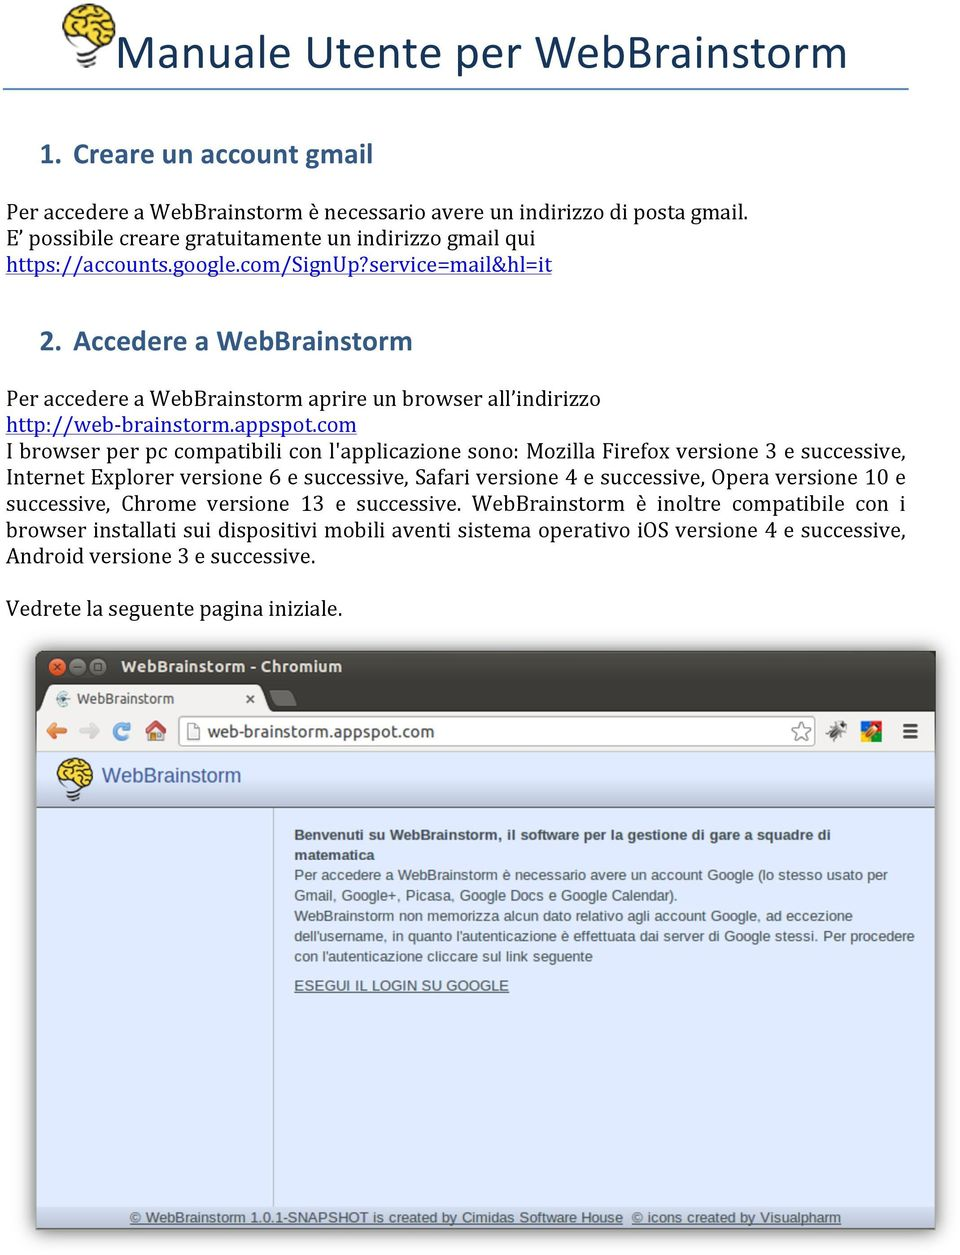 Accedere a WebBrainstorm Per accedere a WebBrainstorm aprire un browser all indirizzo http://web- brainstorm.appspot.